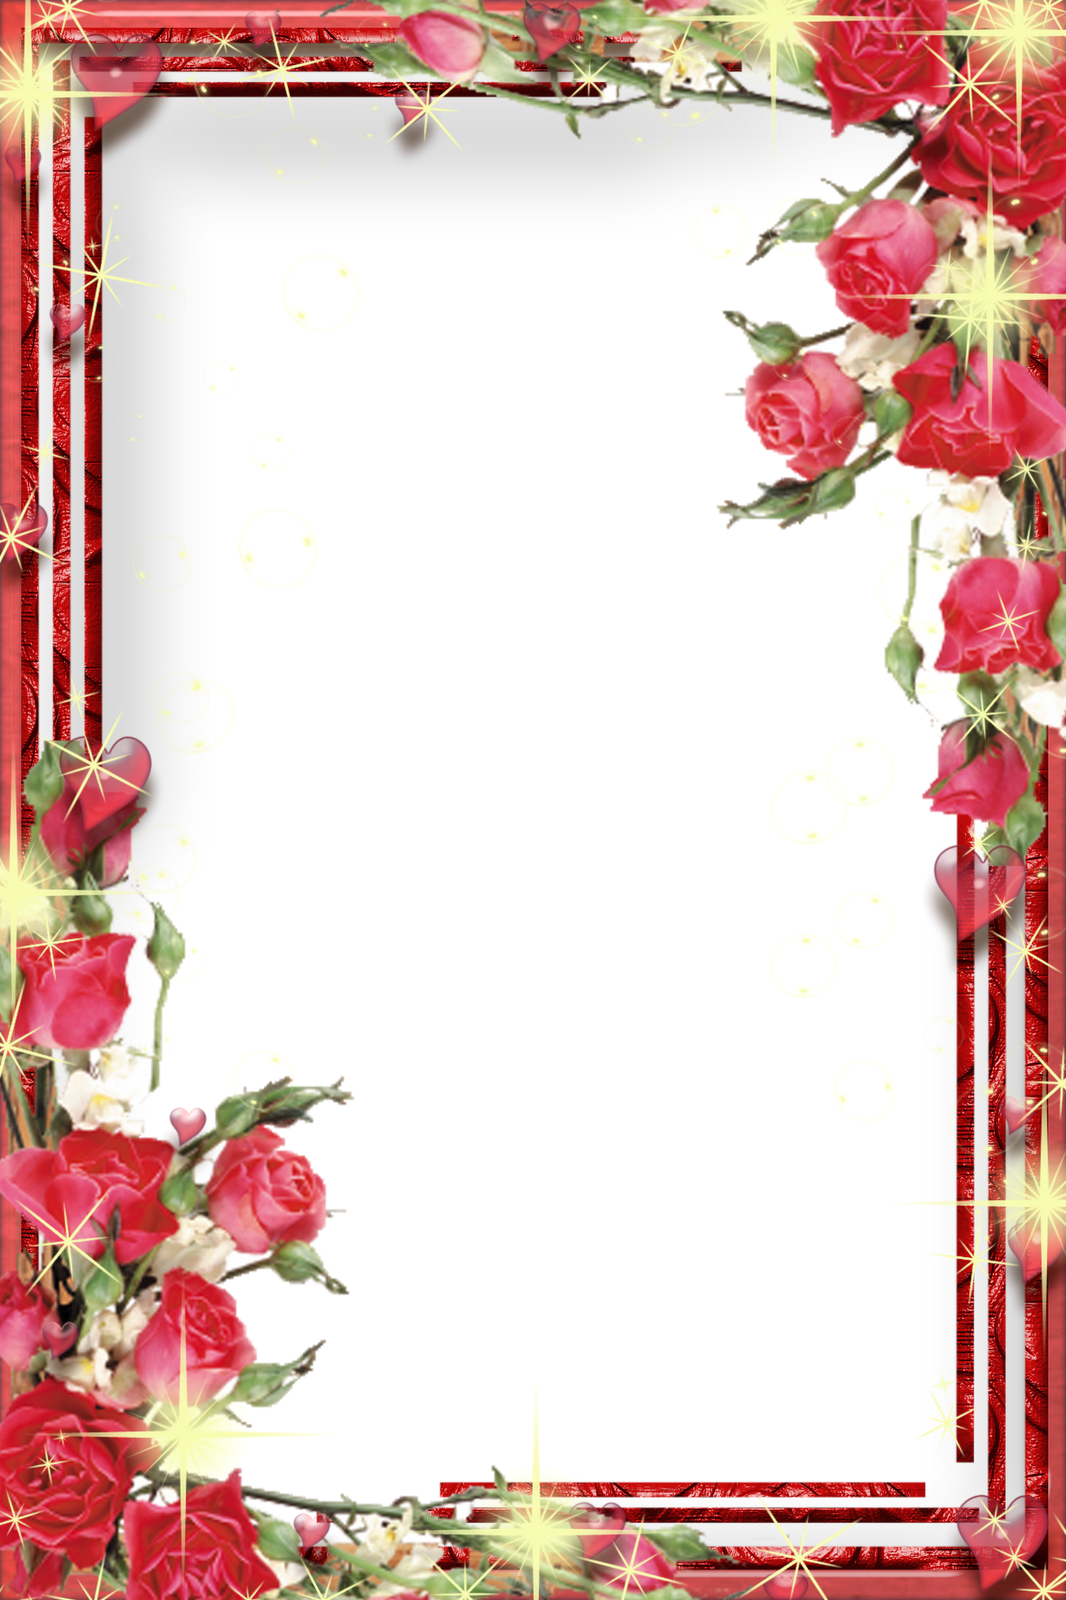 Frame background png. Photo transparent pictures free